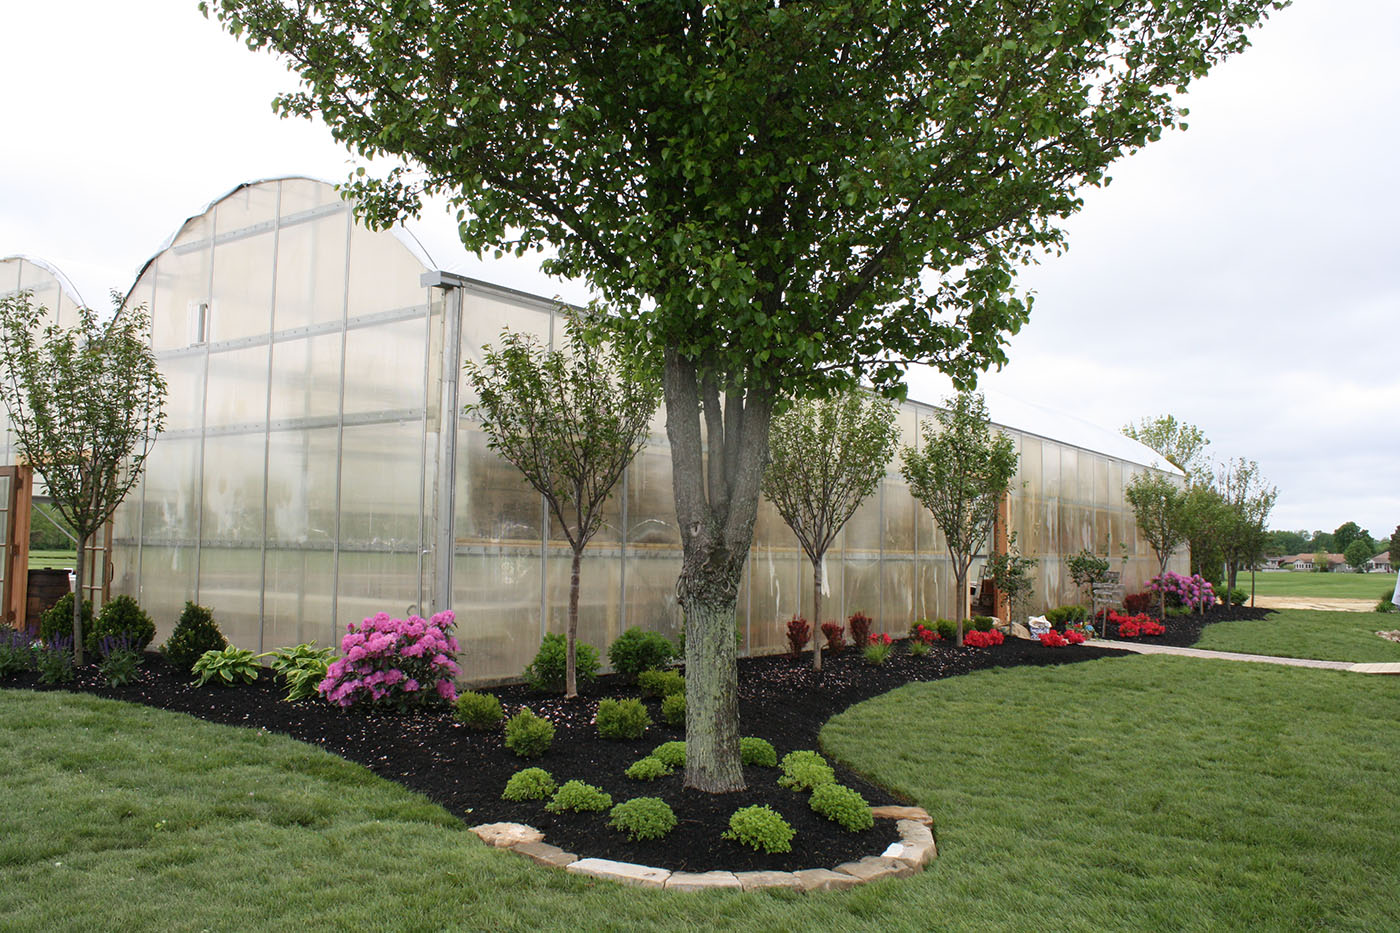 /img/Greenhouse At Vist Golf Course Nashport Ohio 13